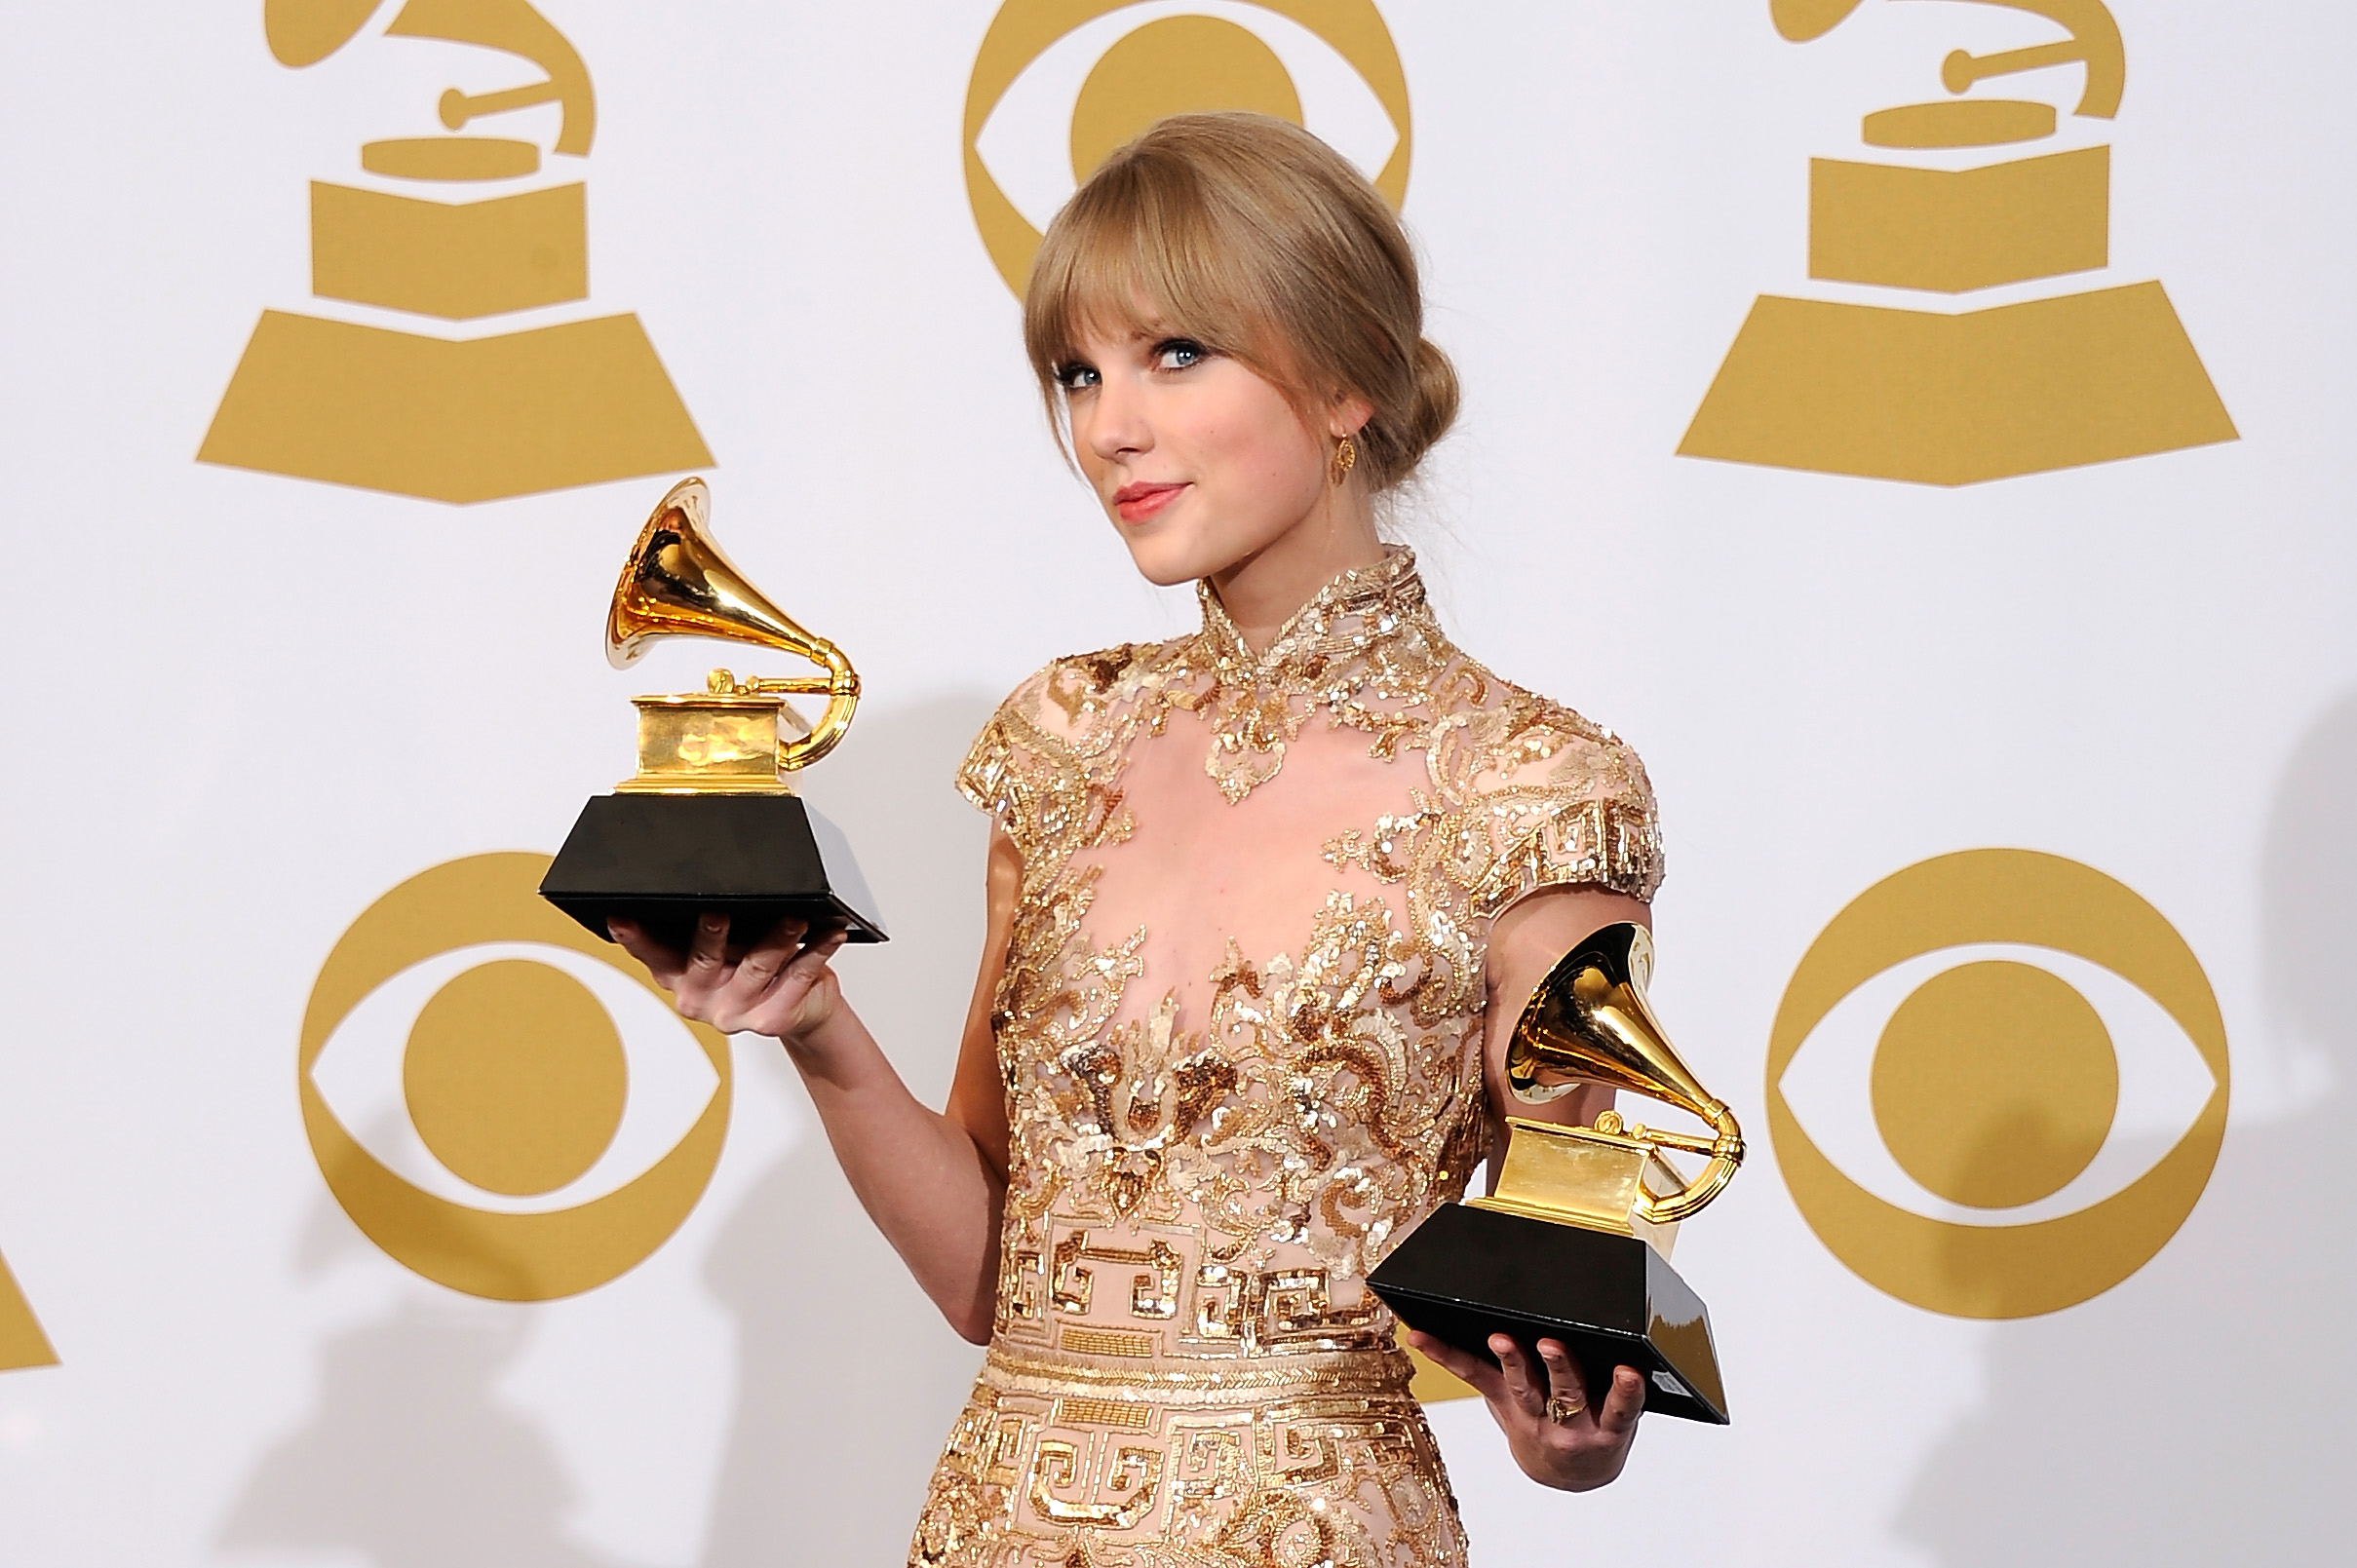 Grammy Award: The Grammy Voting Process Is Completely Ridiculous